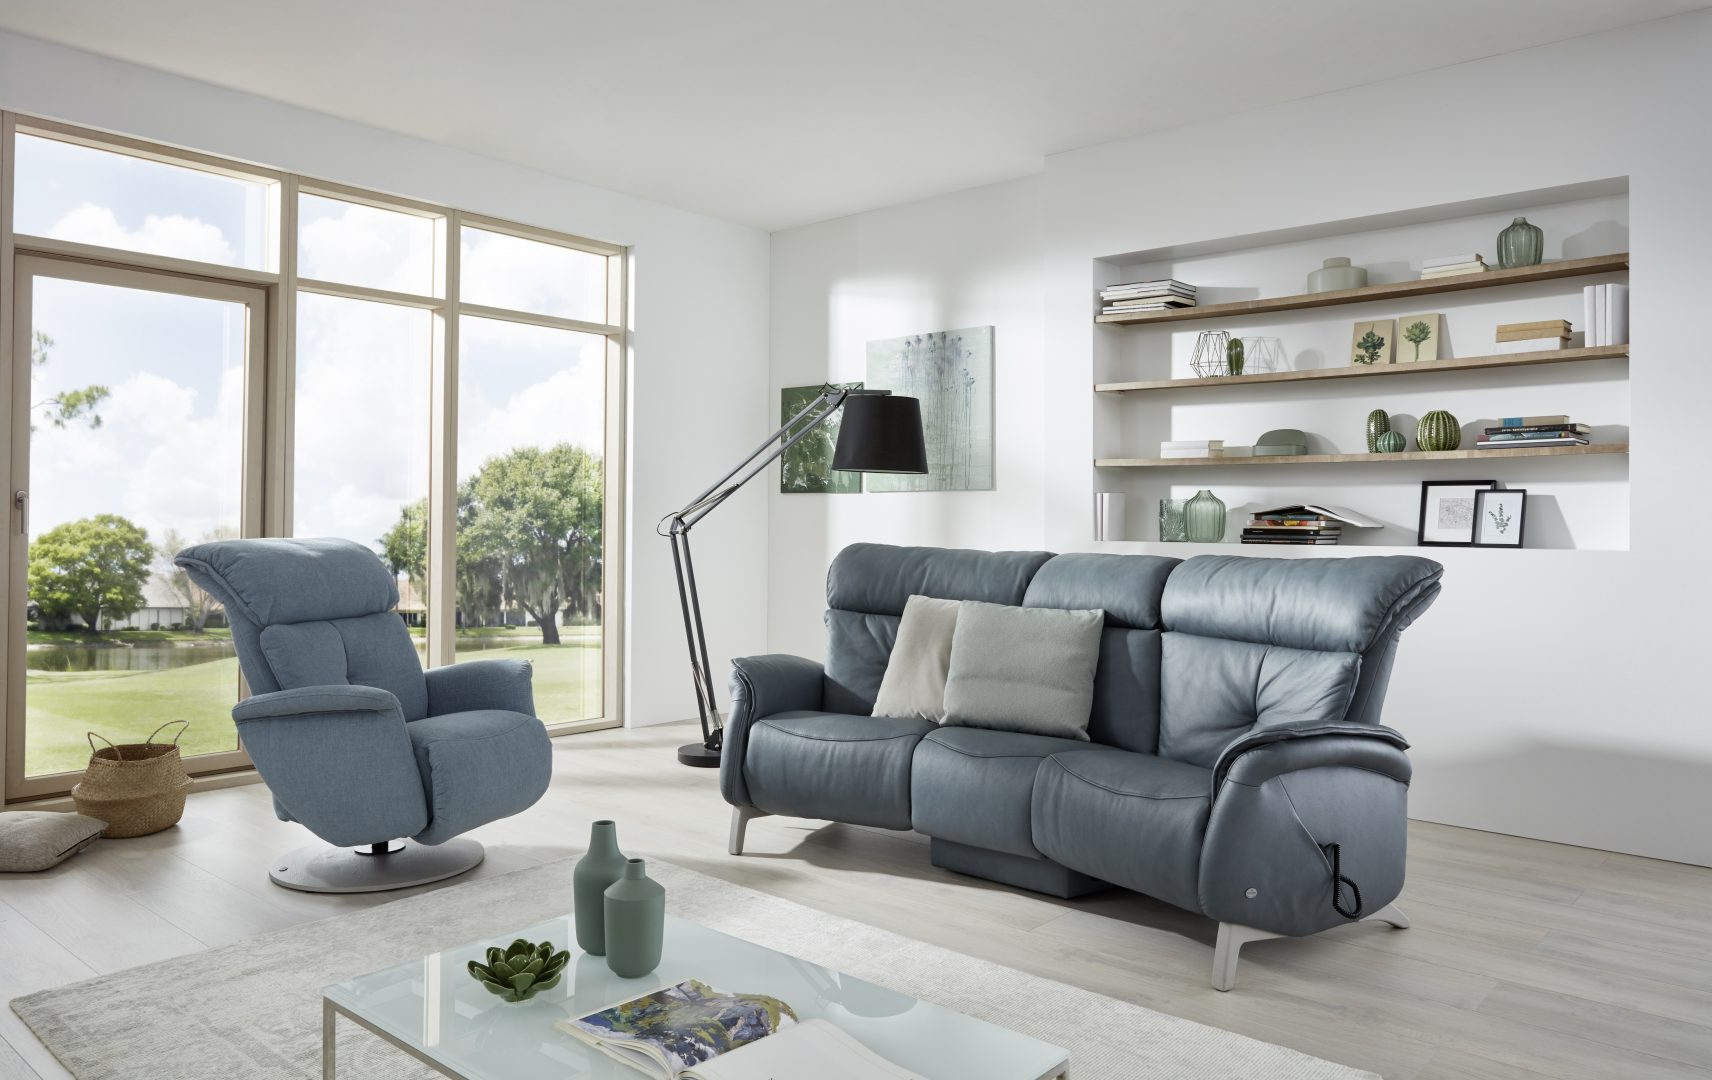 chair-and-sofa-roomset